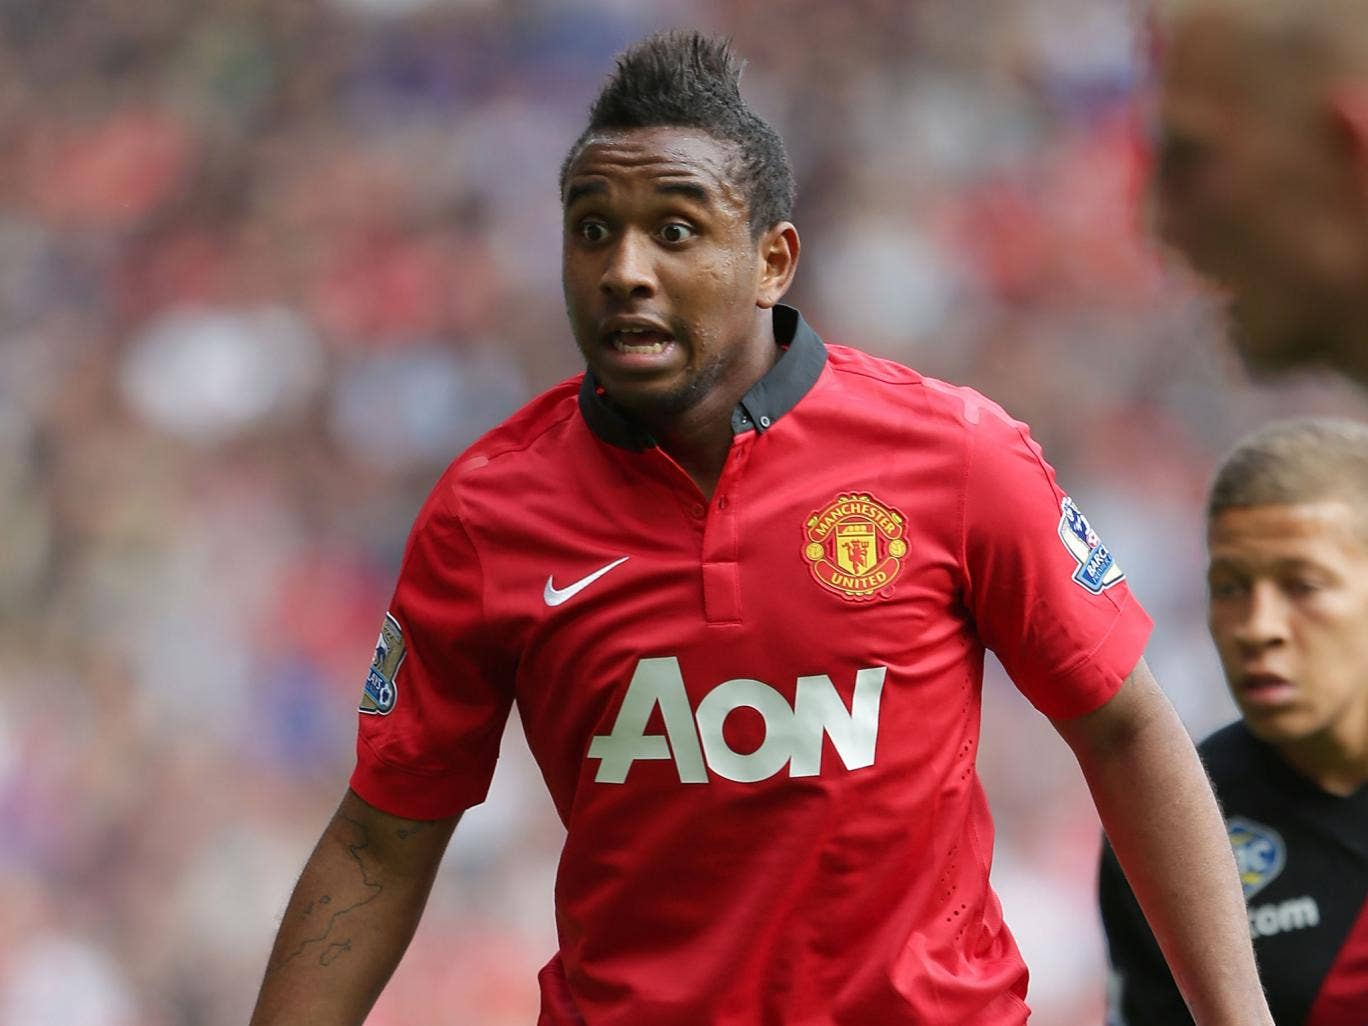 Manchester United midfielder Anderson has joined Fiorentina on loan until the end of the season